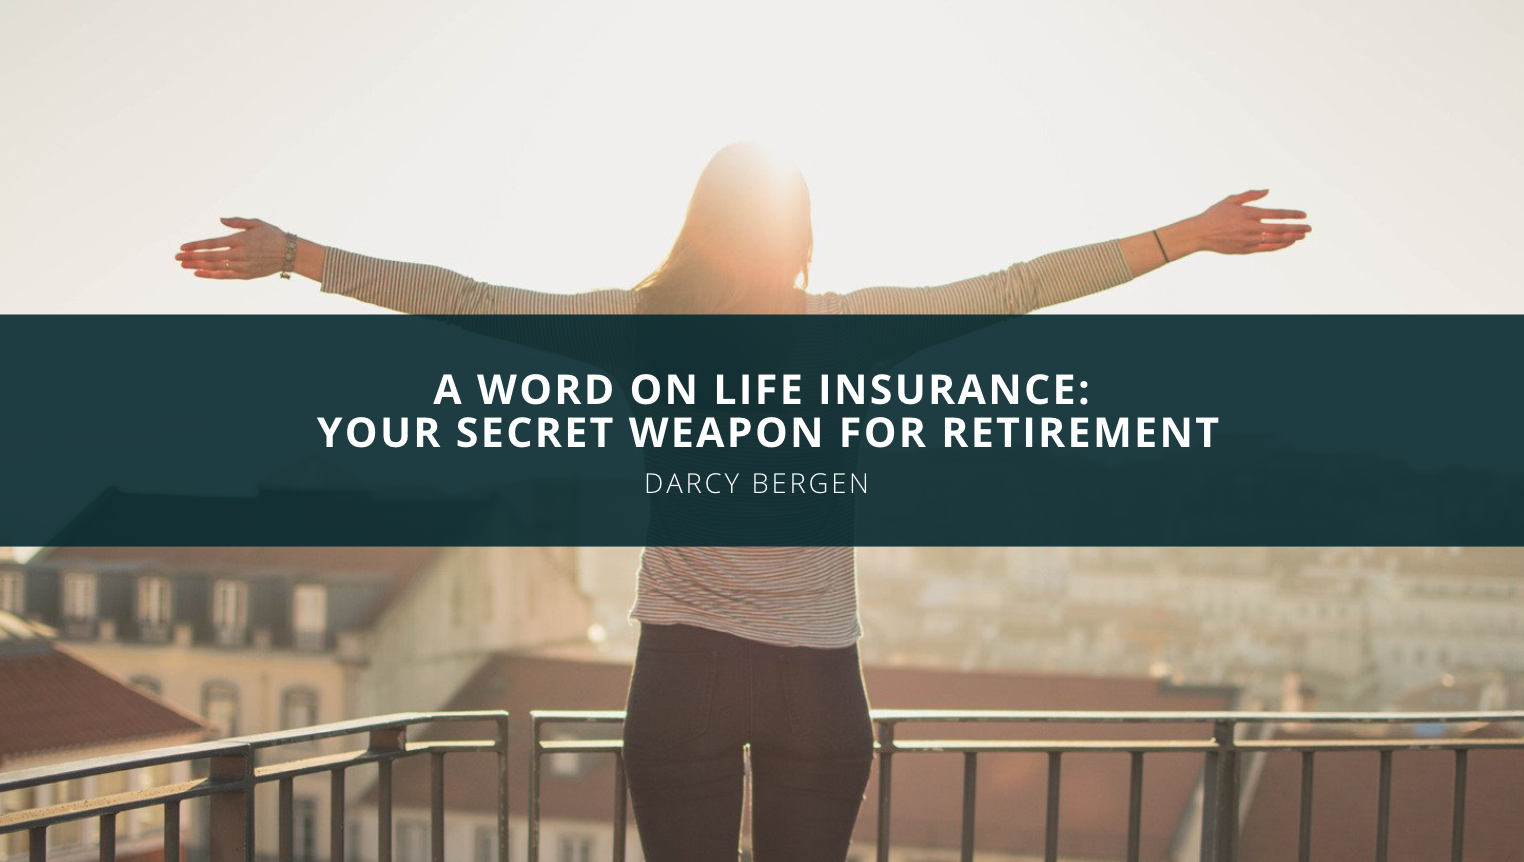 A Word From Darcy Bergen on Life Insurance: Your Secret Weapon for Retirement